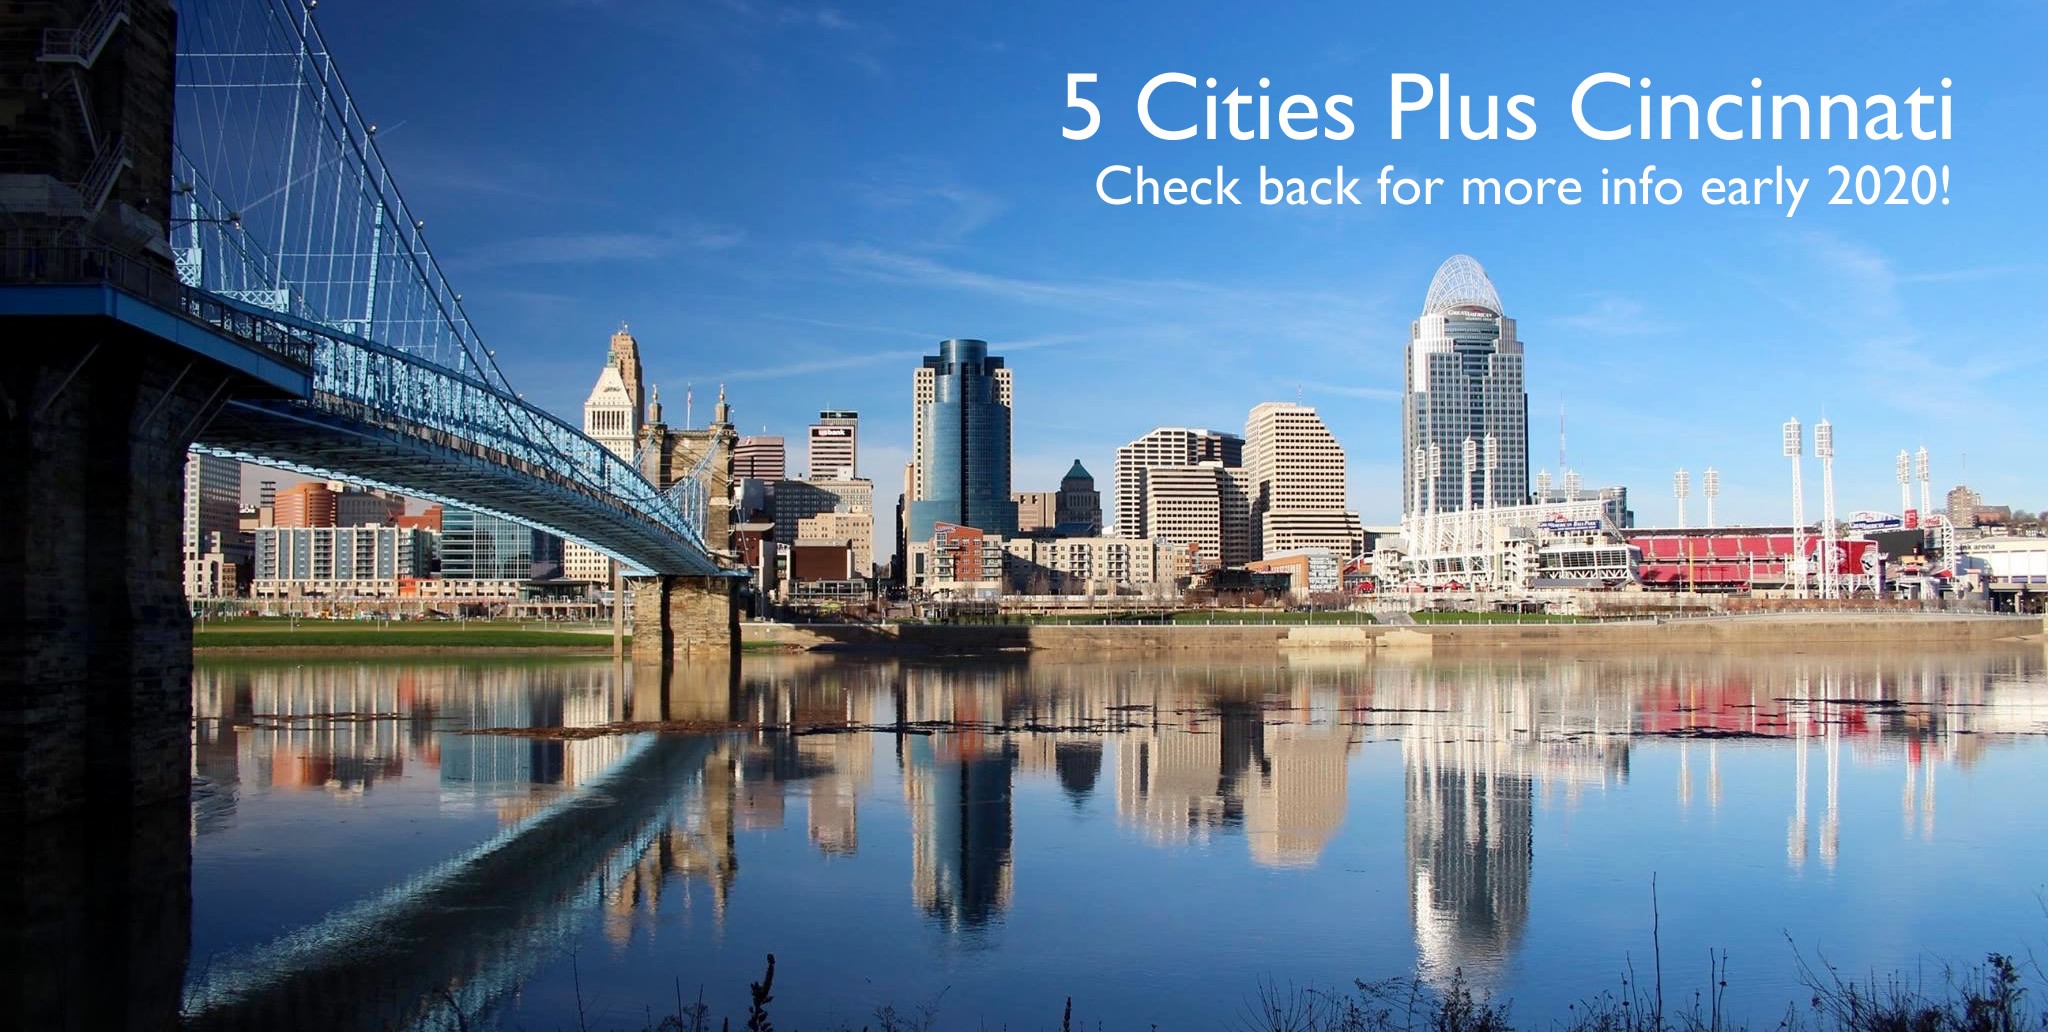 5 Cities Plus Cincinnati: Check back for more info here early 2020!